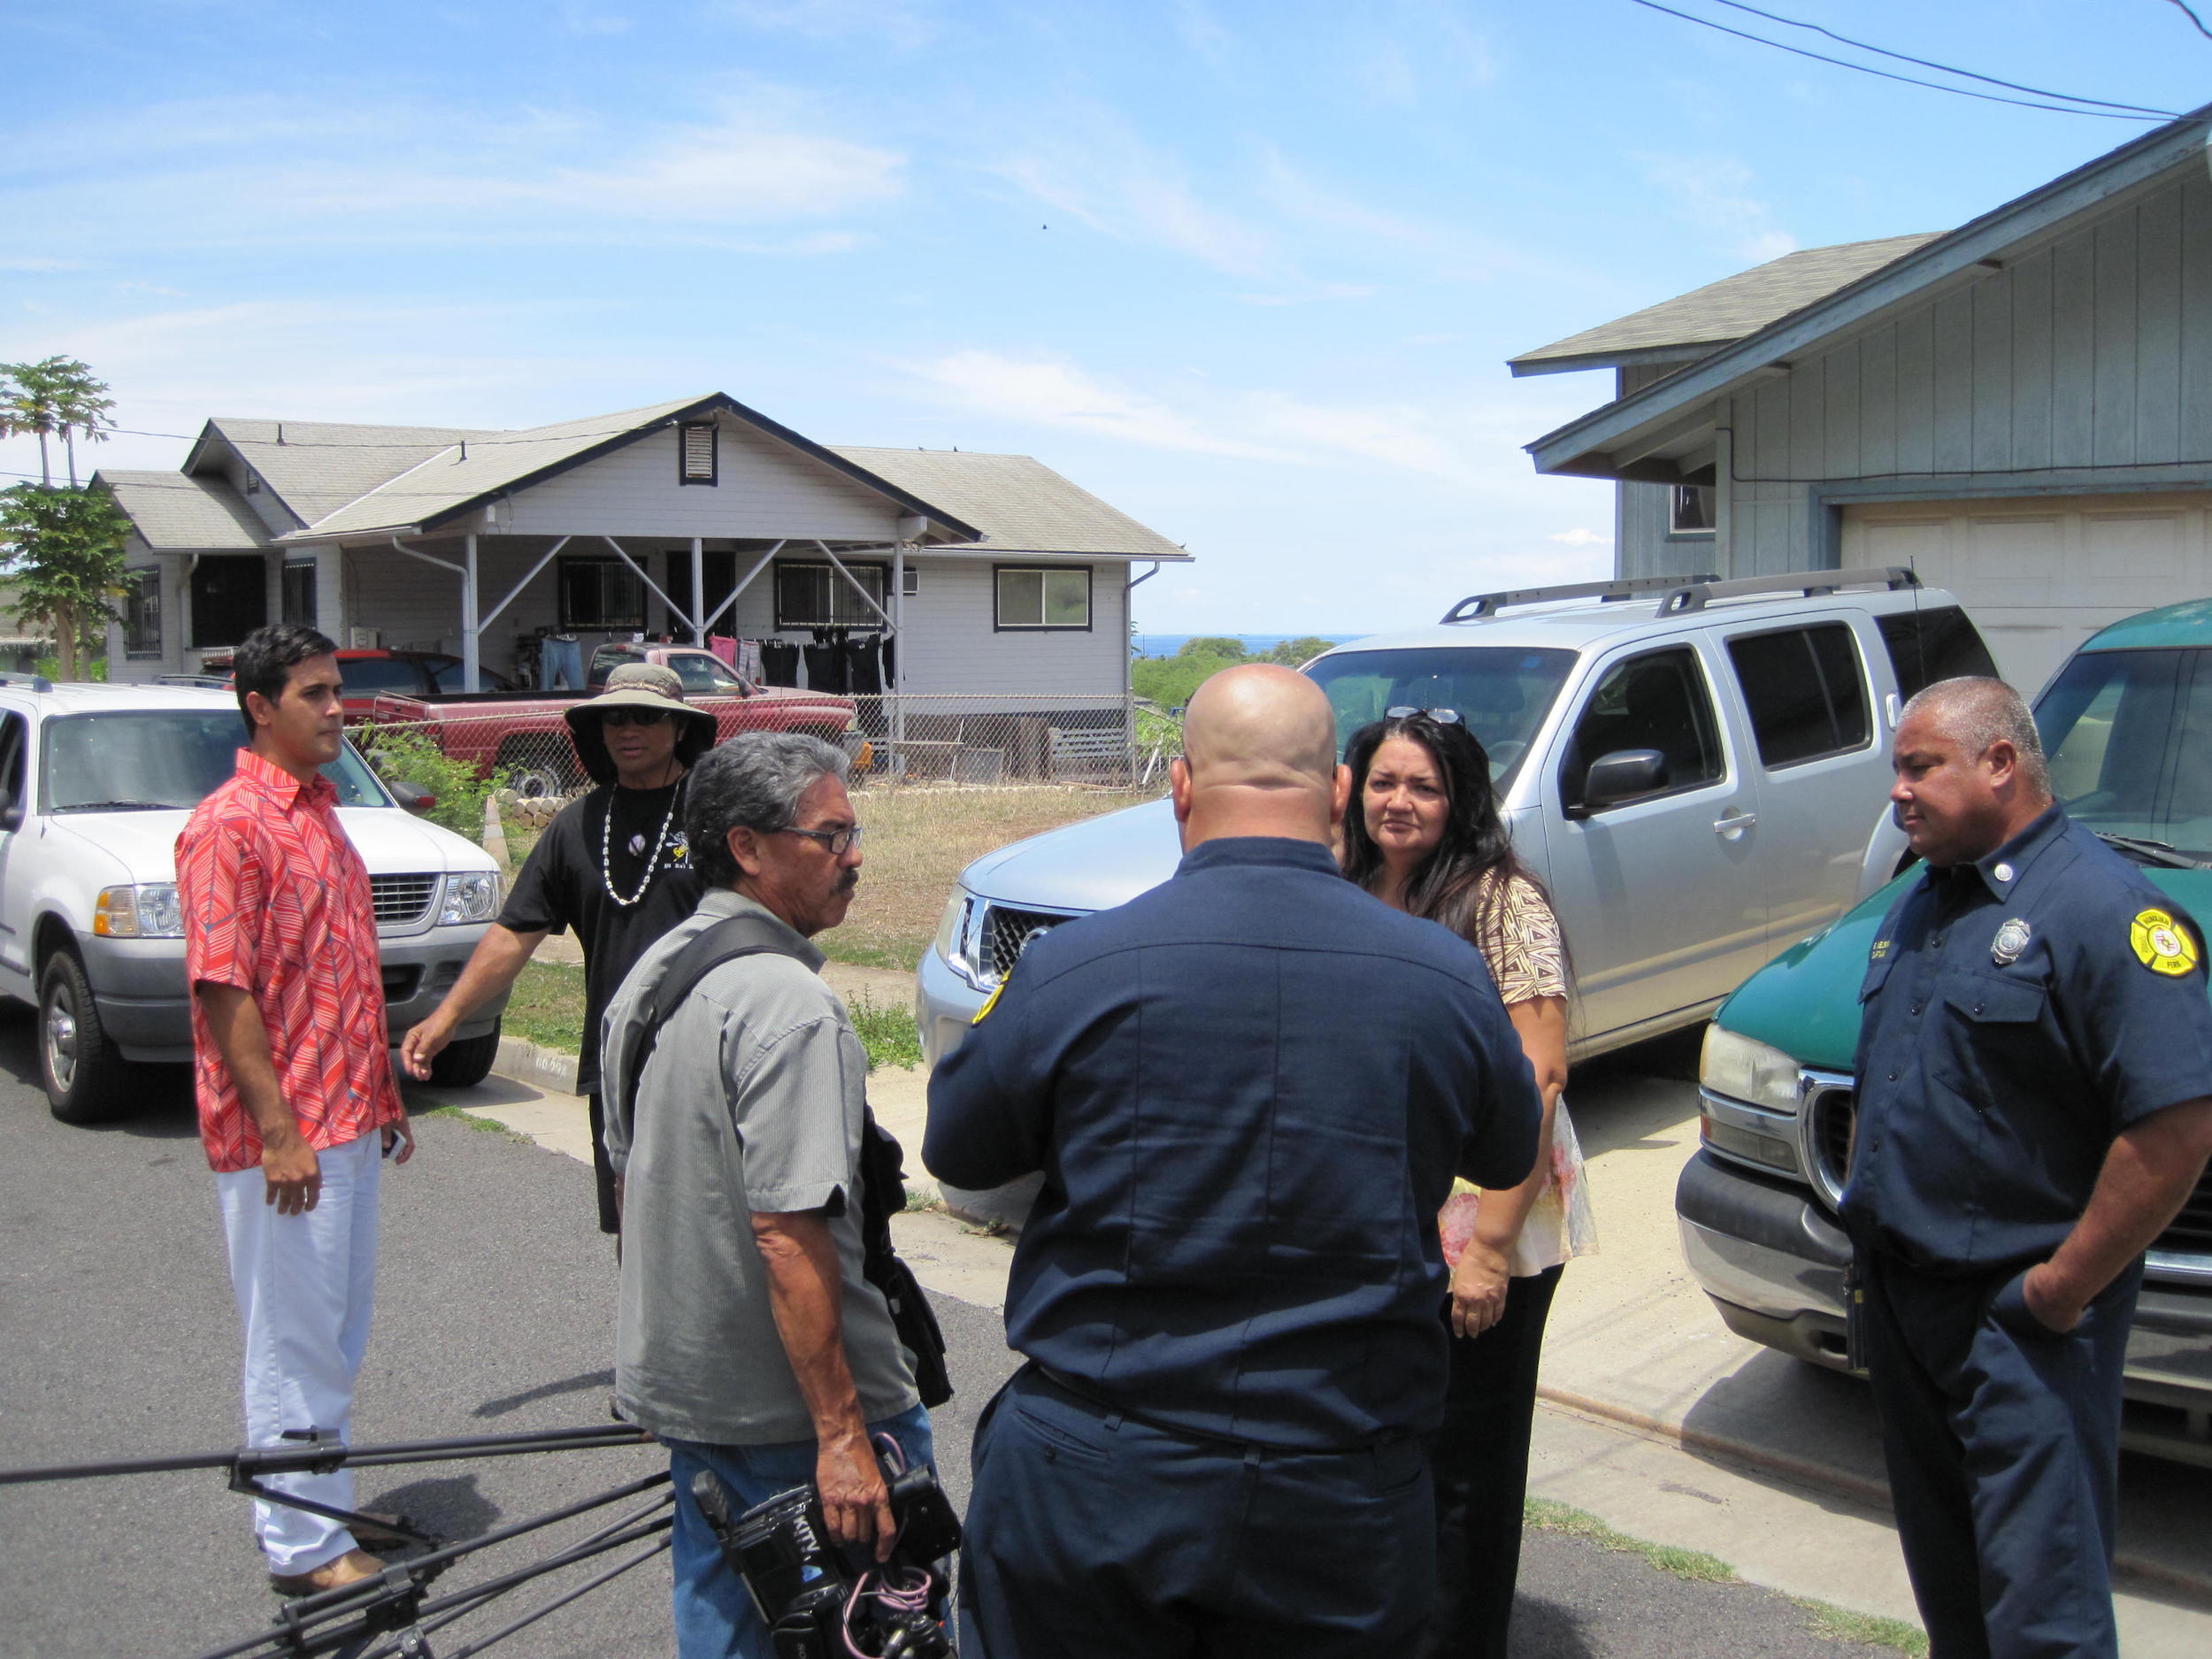 News reporters and Honolulu Fire Department talk with residents who experienced the fire first-hand and created defensible space far in advance of the fire.